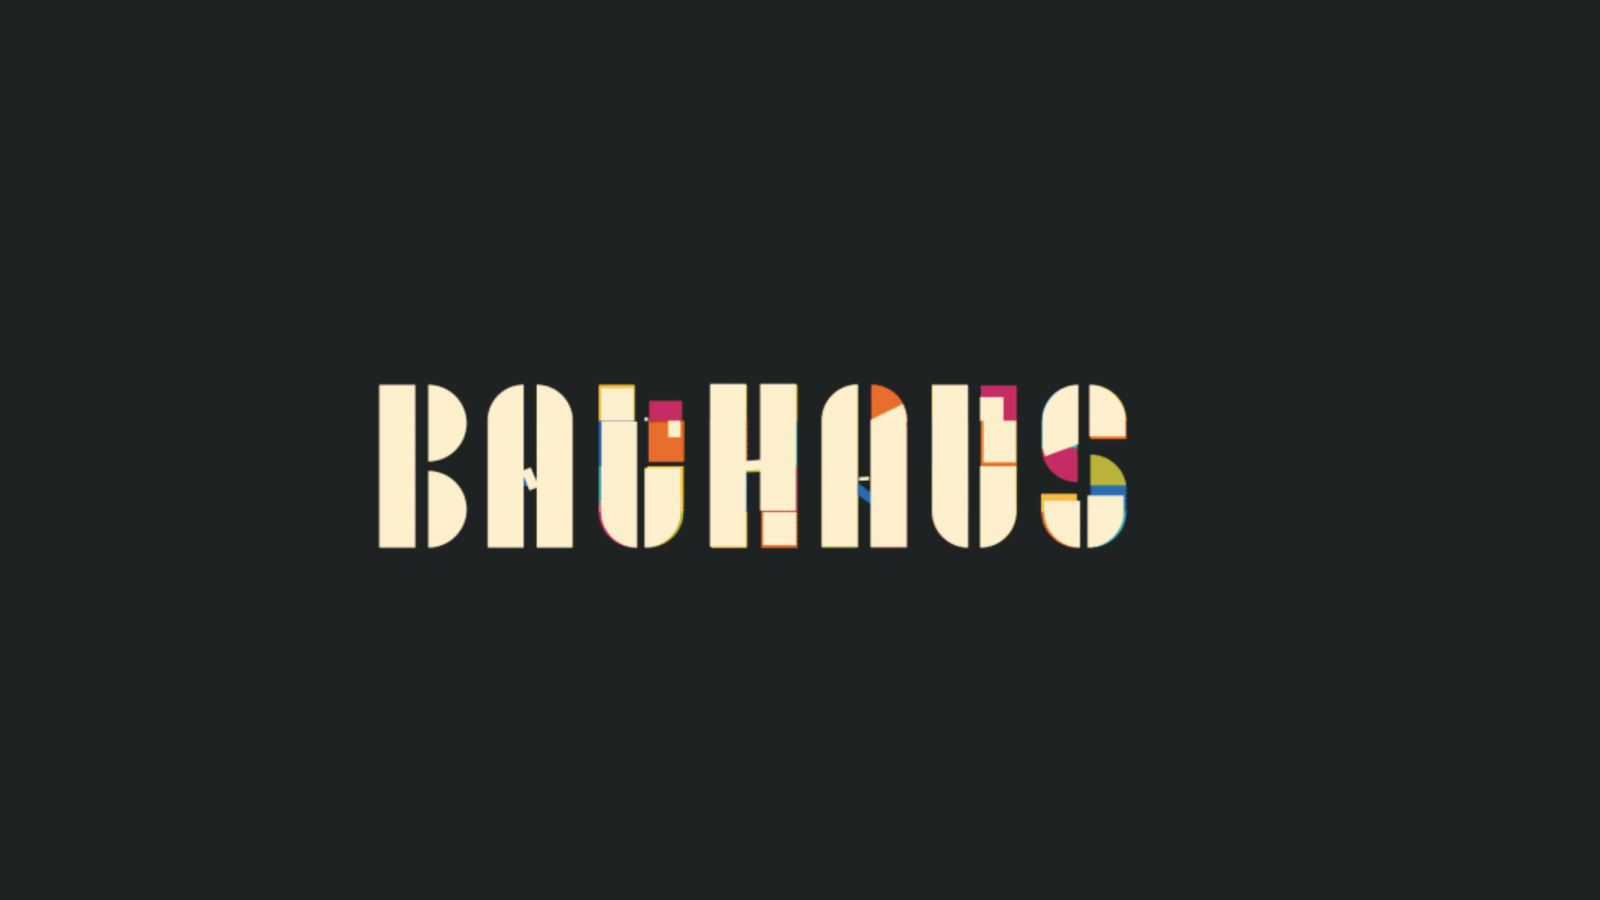 Motion Design & Typography Awesomeness for Adobe Hidden Treasures Bauhaus Dessau